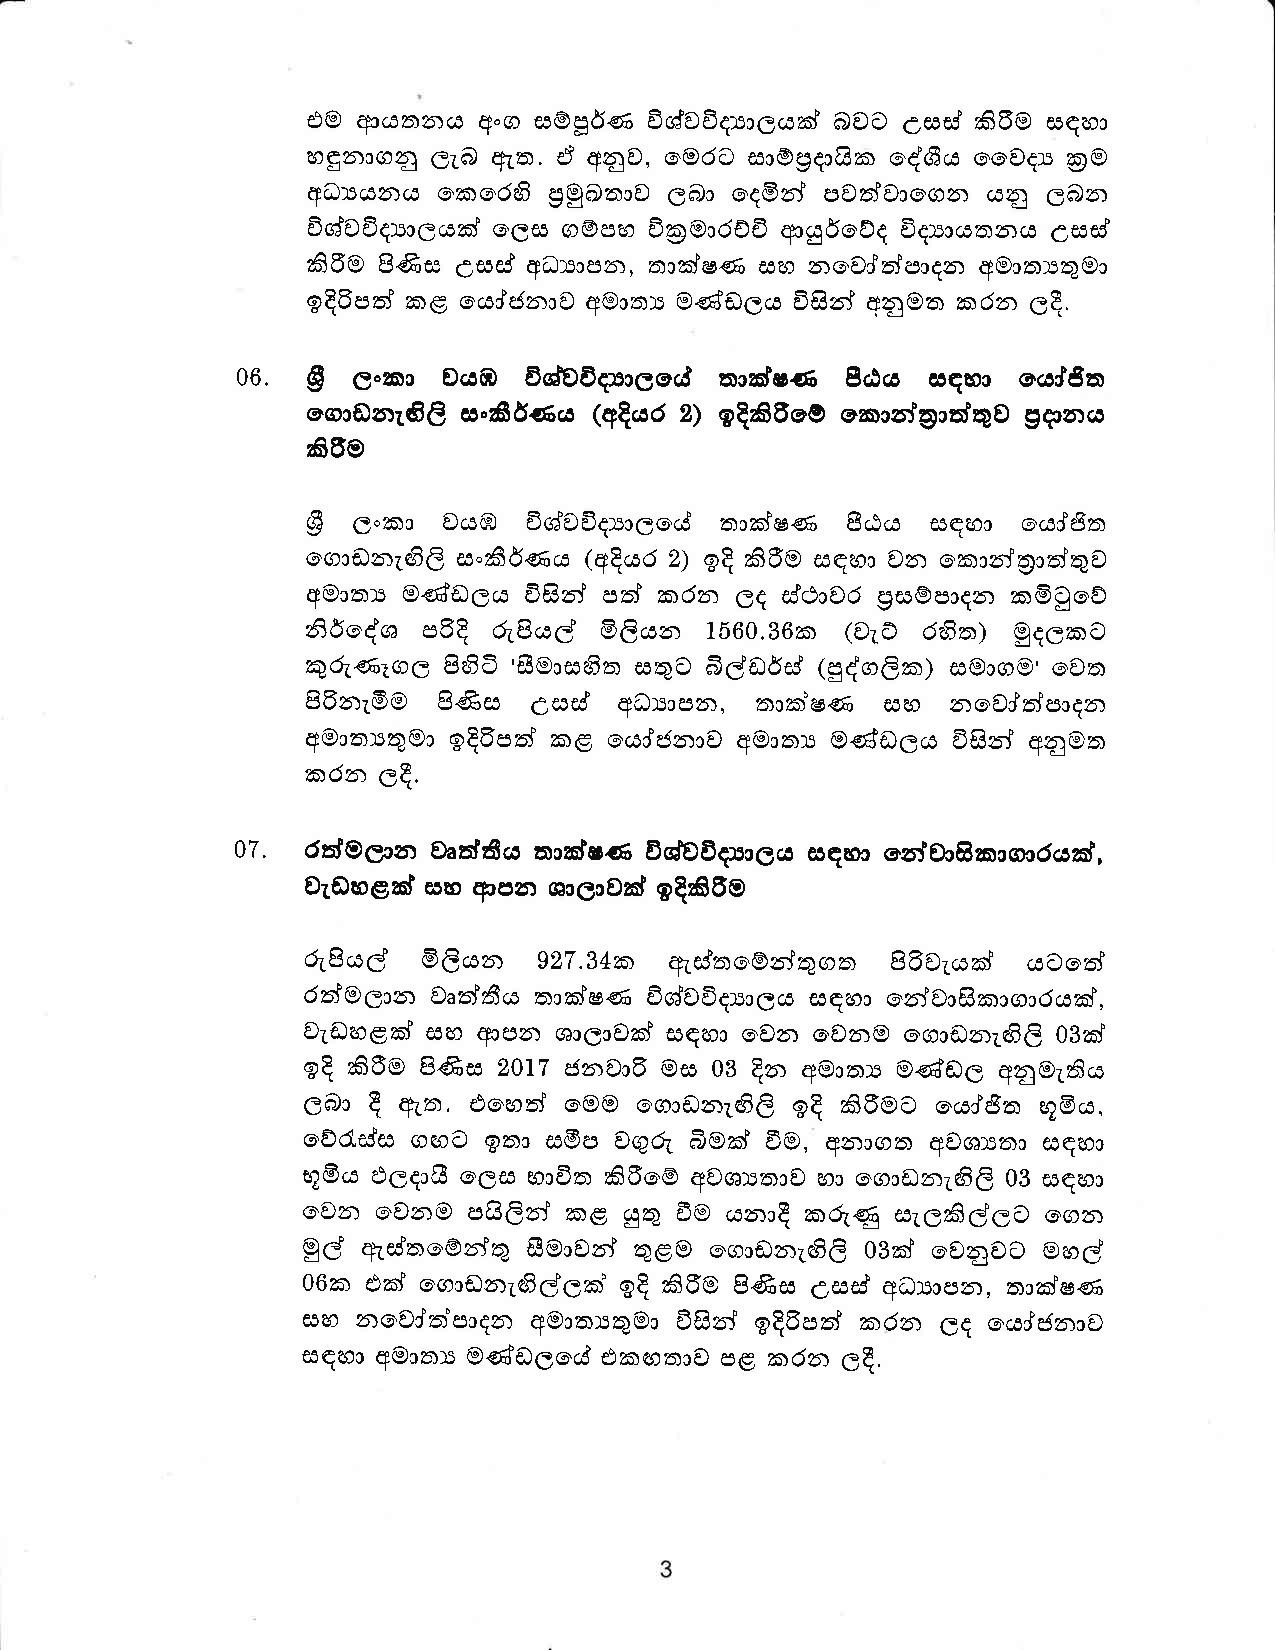 Cabinet Decision on 08.07.2020S page 003